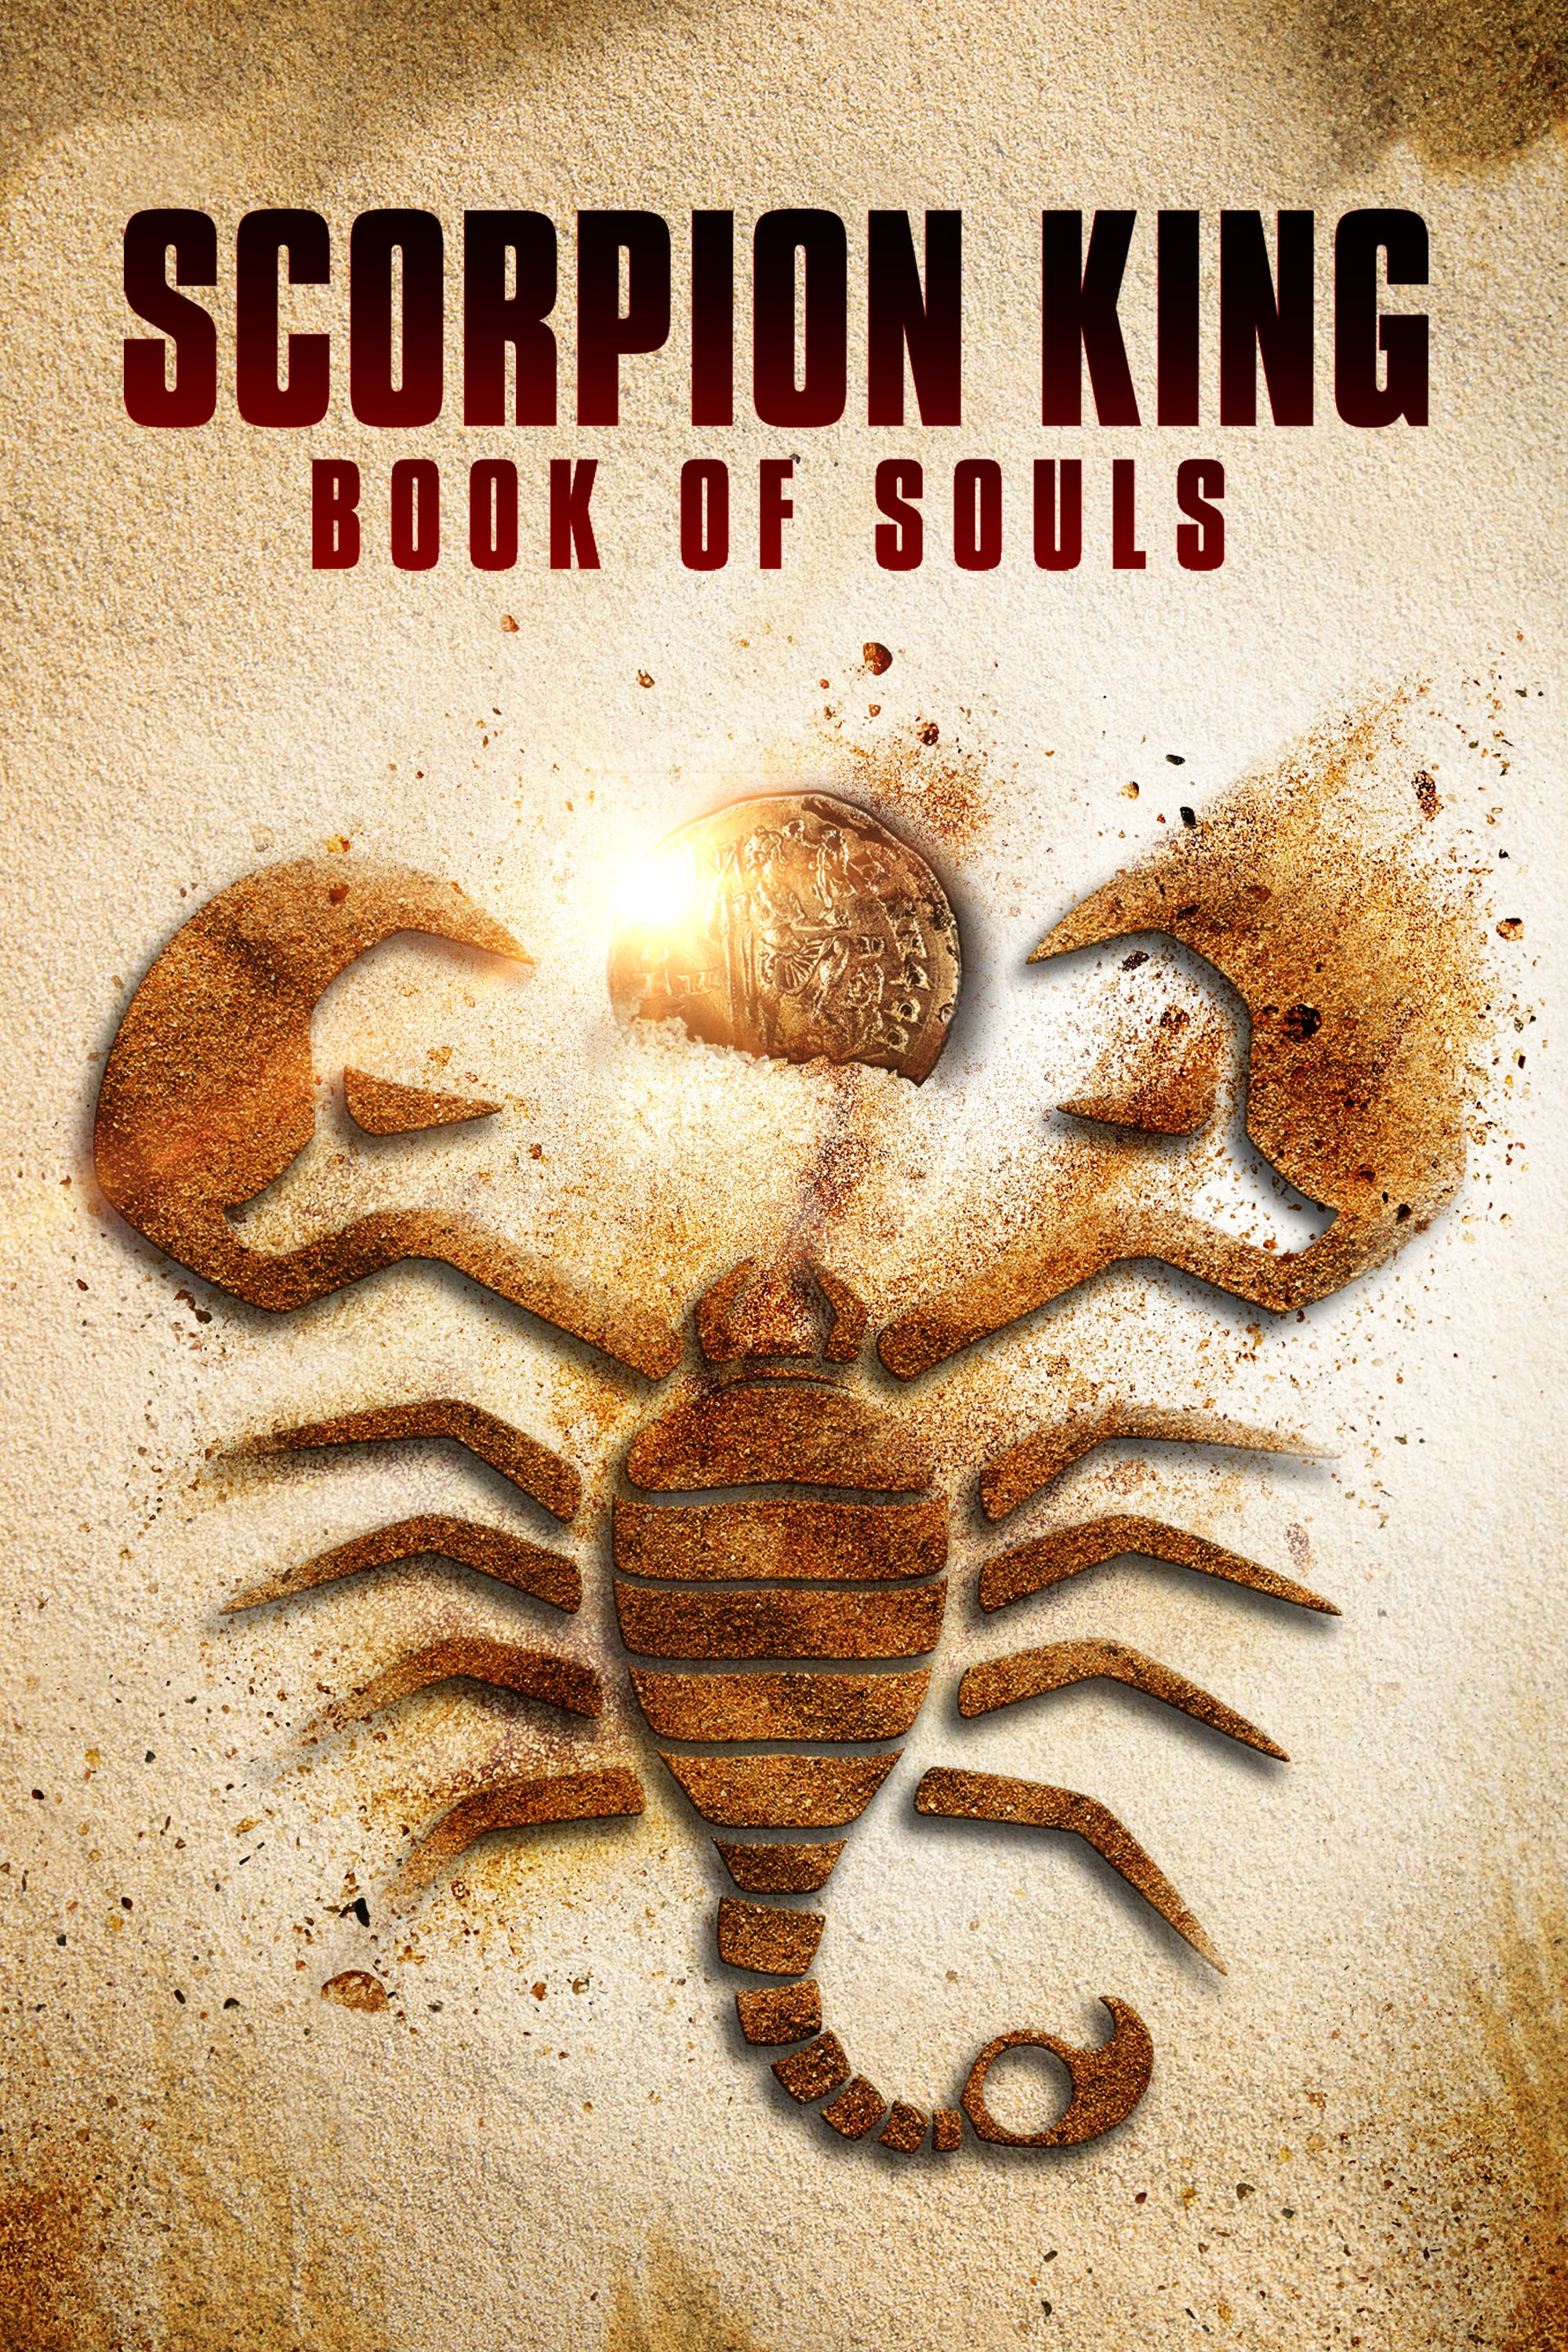 Image result for scorpion king book of souls